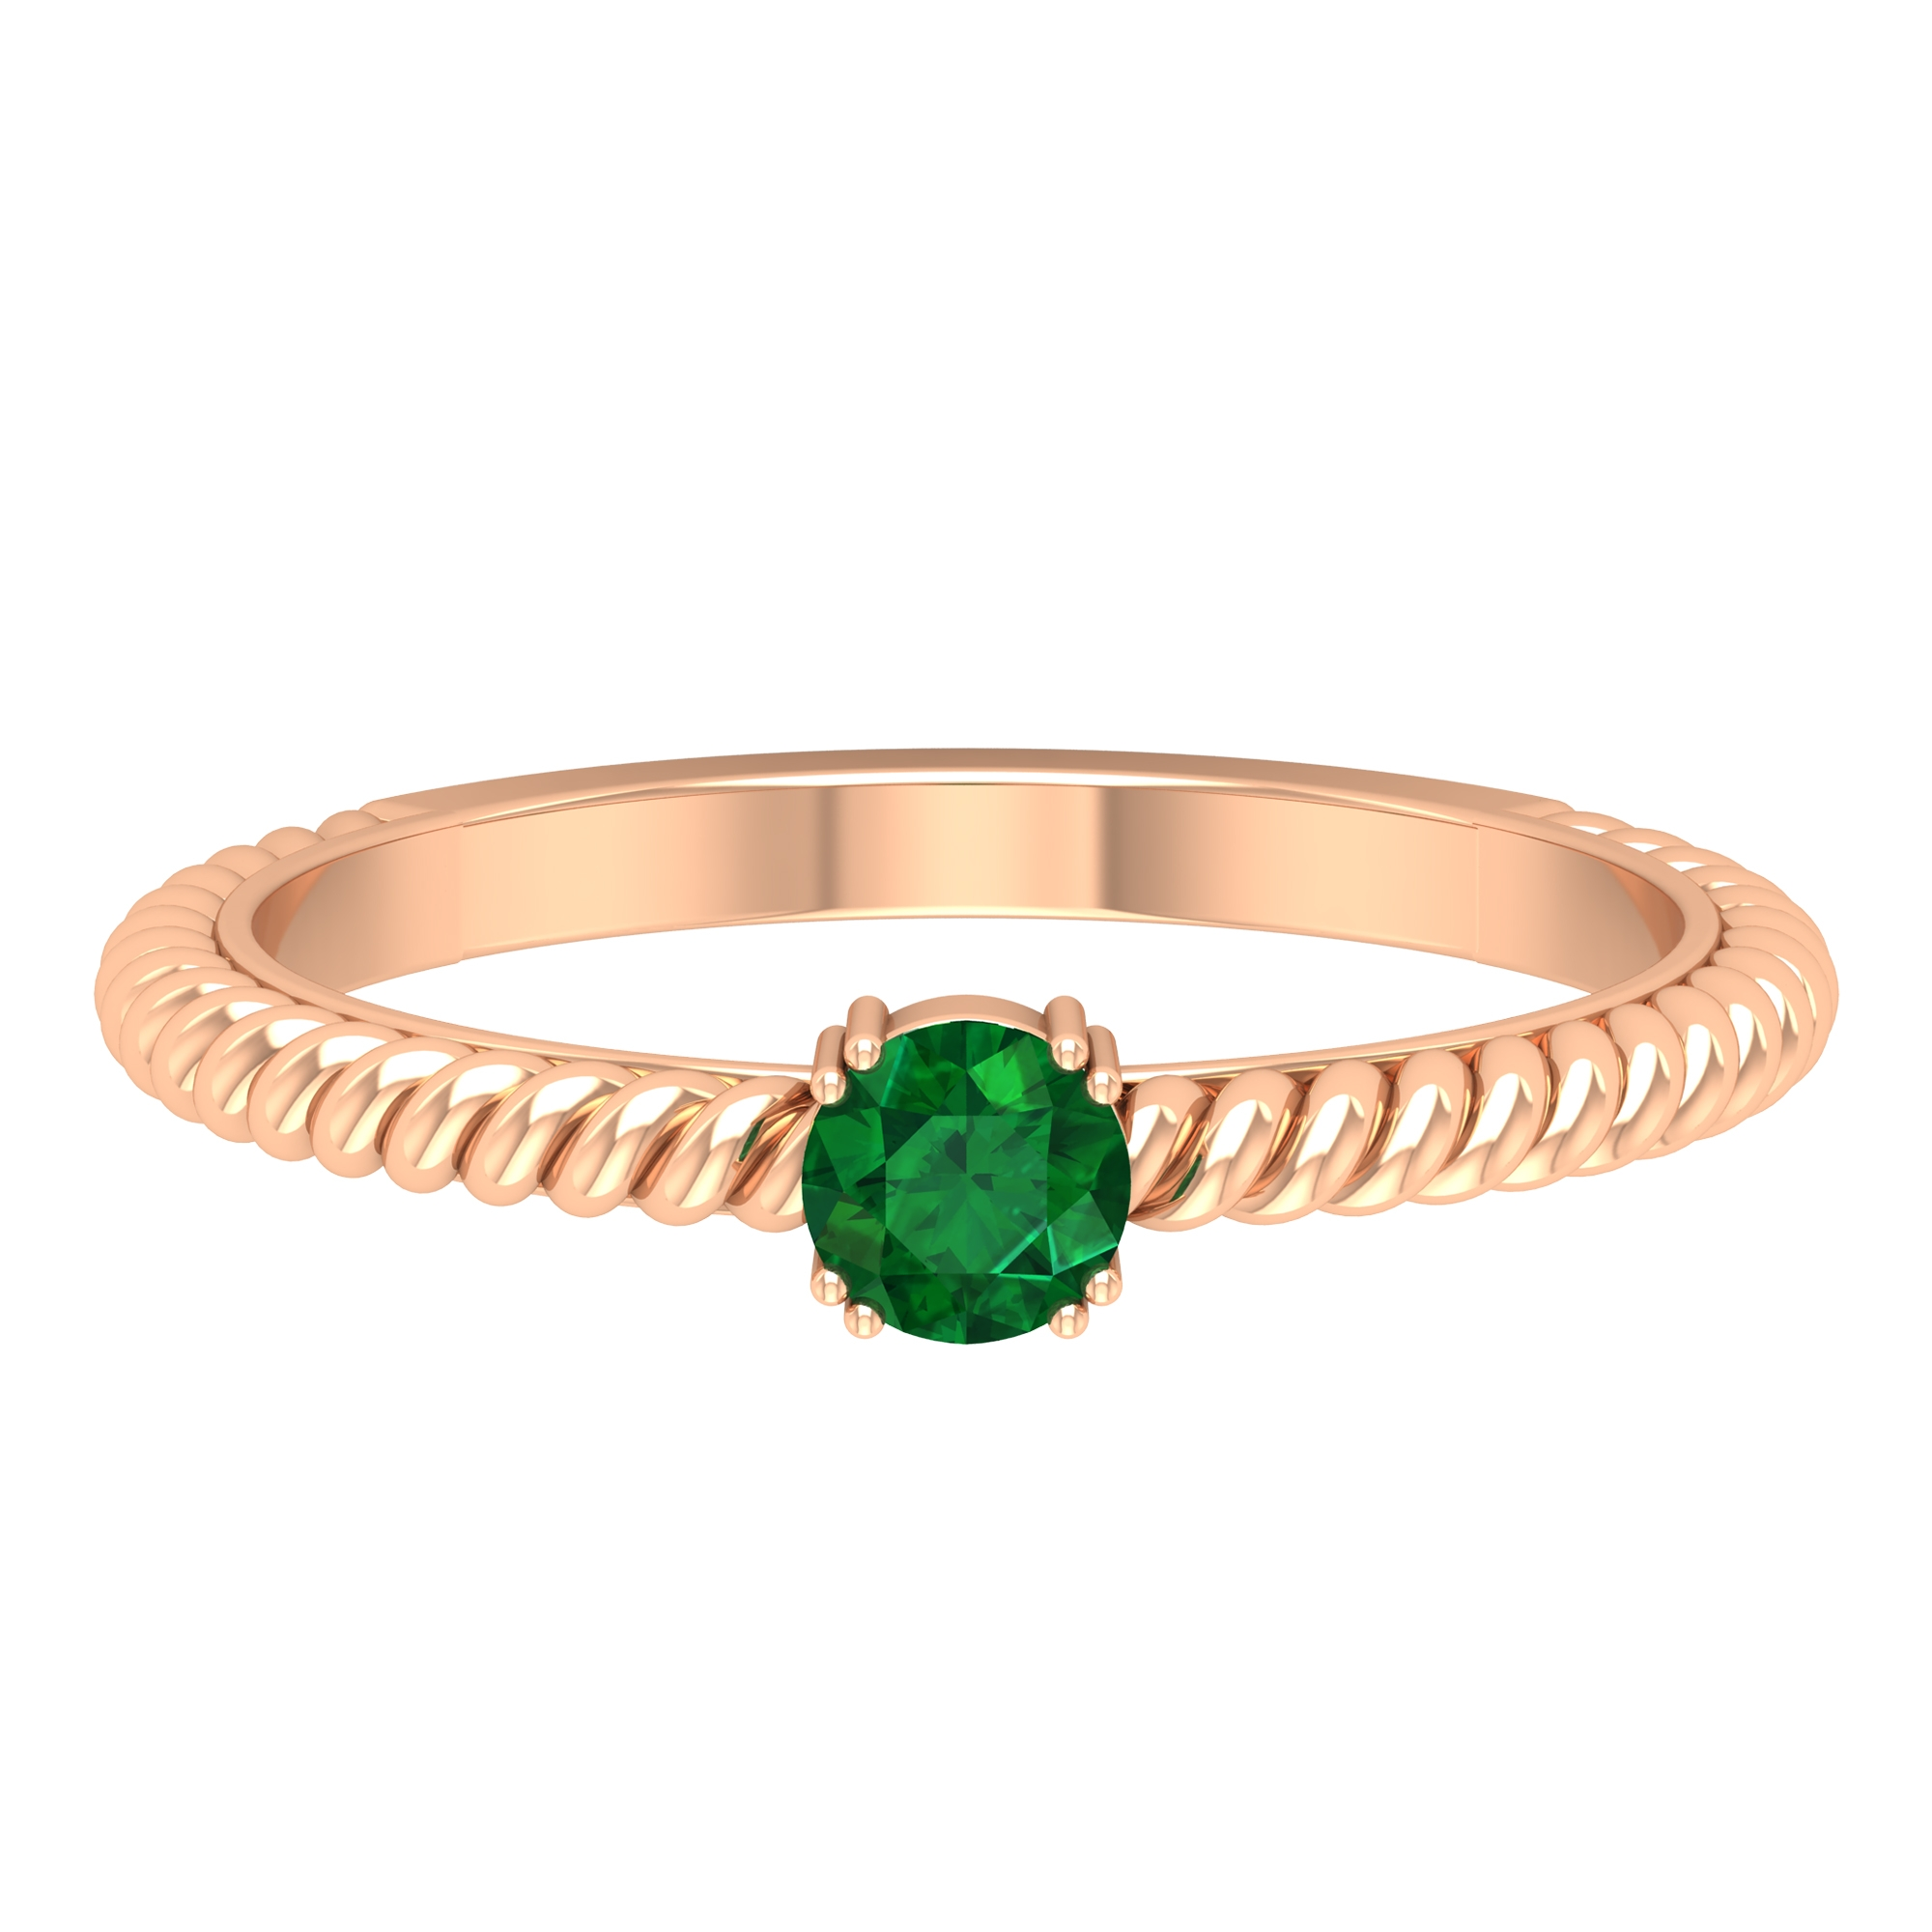 May Birthstone 4 MM Round Cut Emerald Solitaire Ring in Double Prong Setting with Twisted Rope Frame